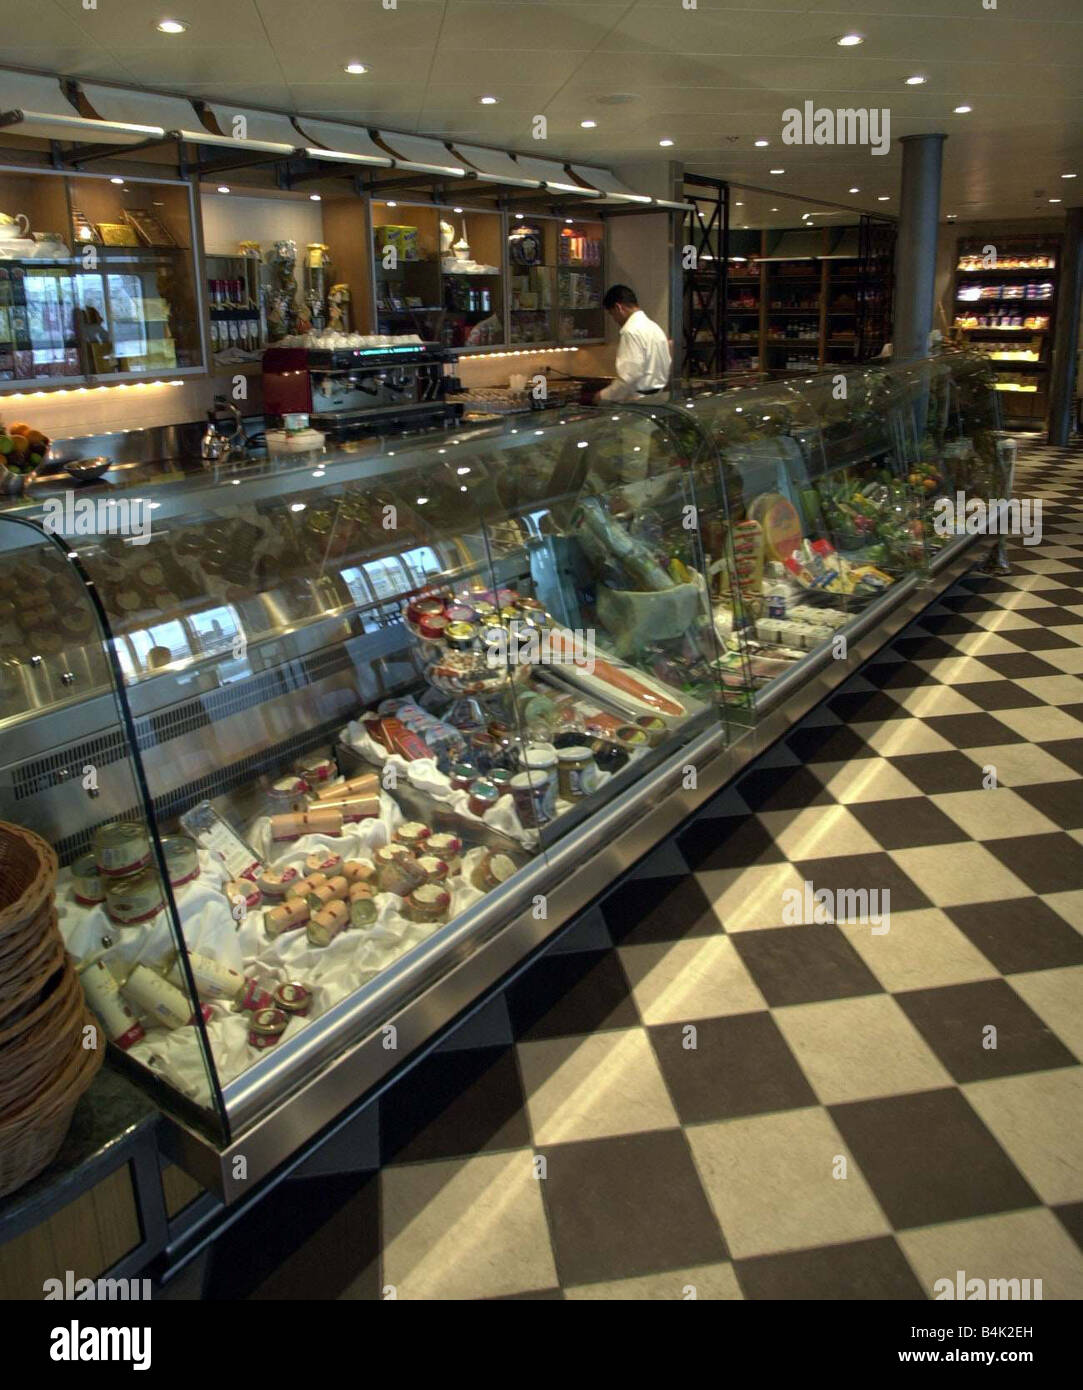 The World Luxury Cruise Liner Feature April 2002 Pictured at Greenwich South London Cruise Liners The Food Shop - Stock Image